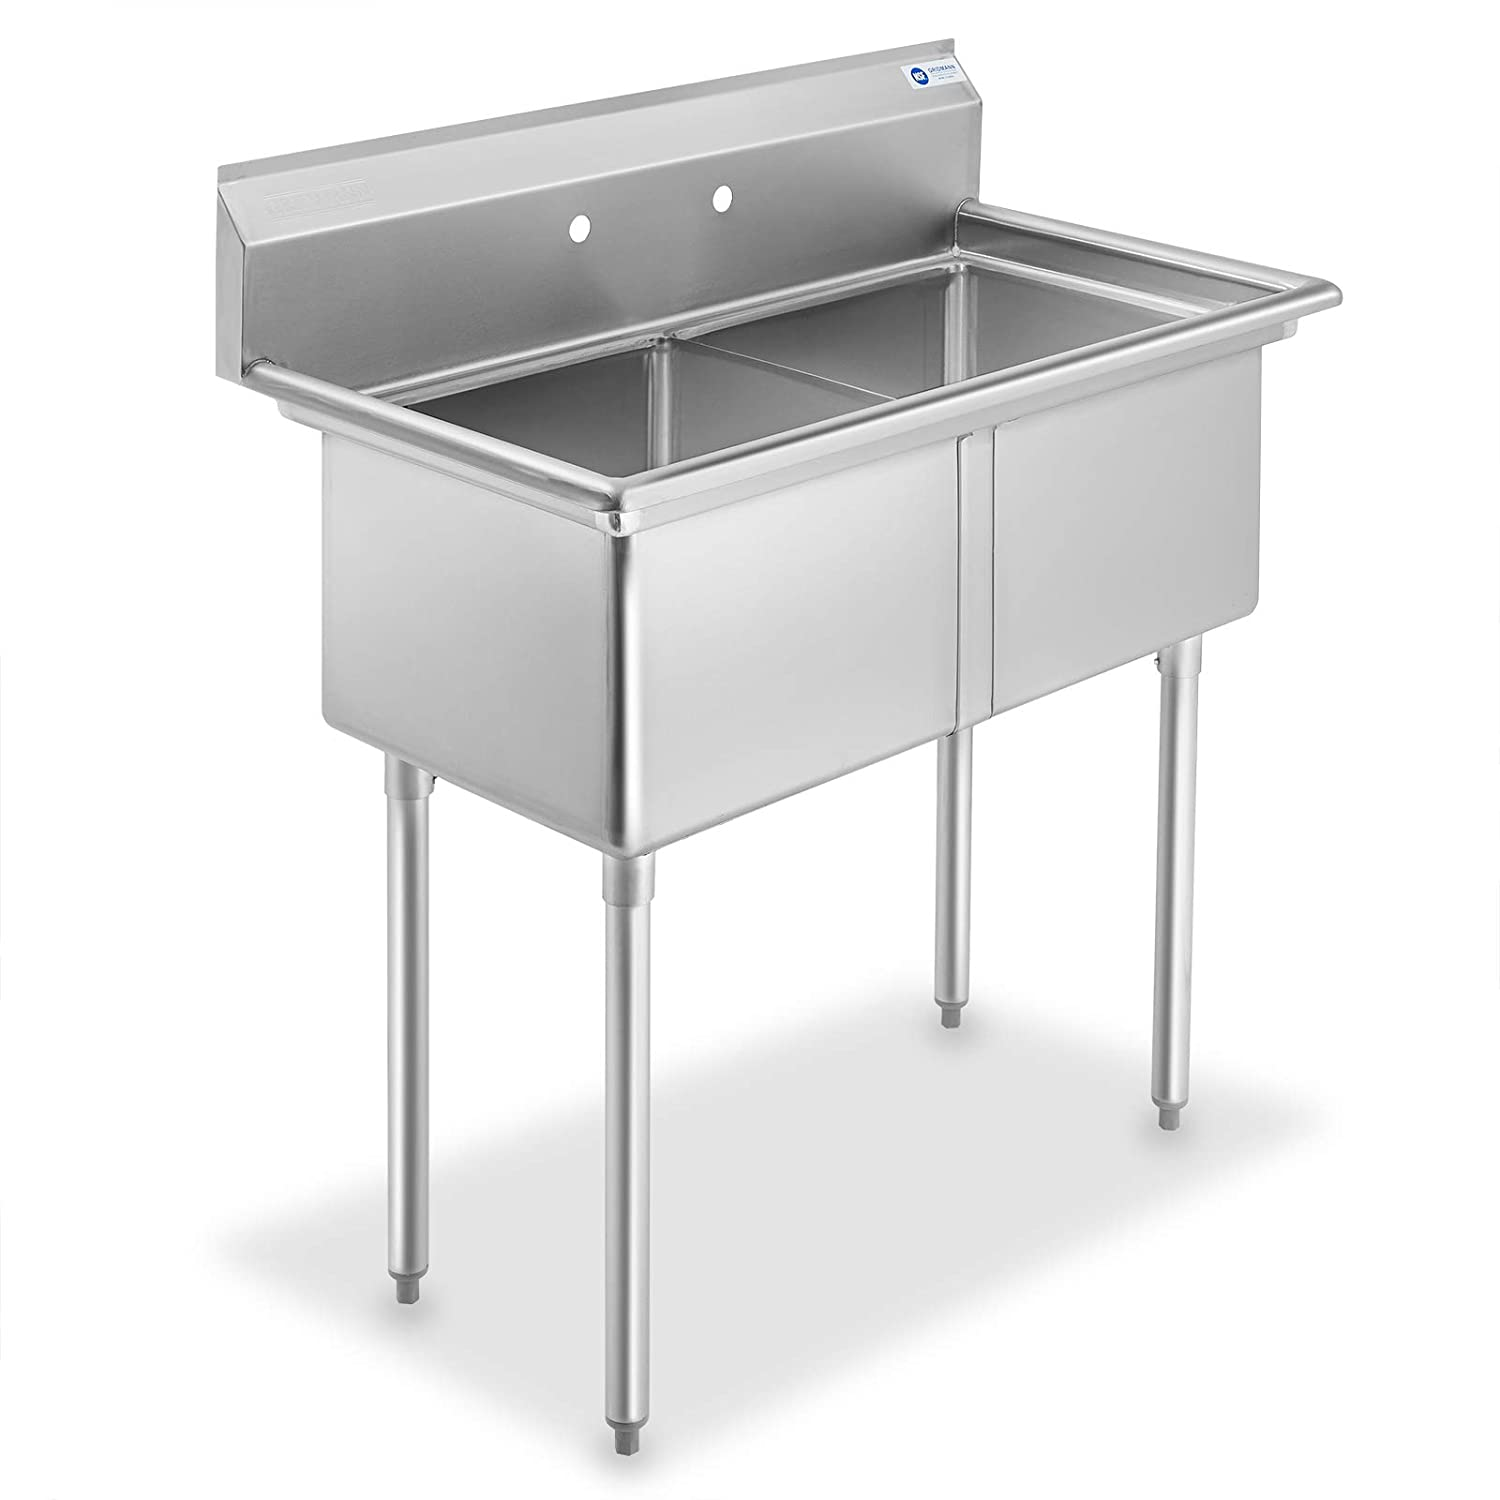 GRIDMANN 2 Compartment NSF Stainless Steel Commercial Kitchen Prep & Utility Sink